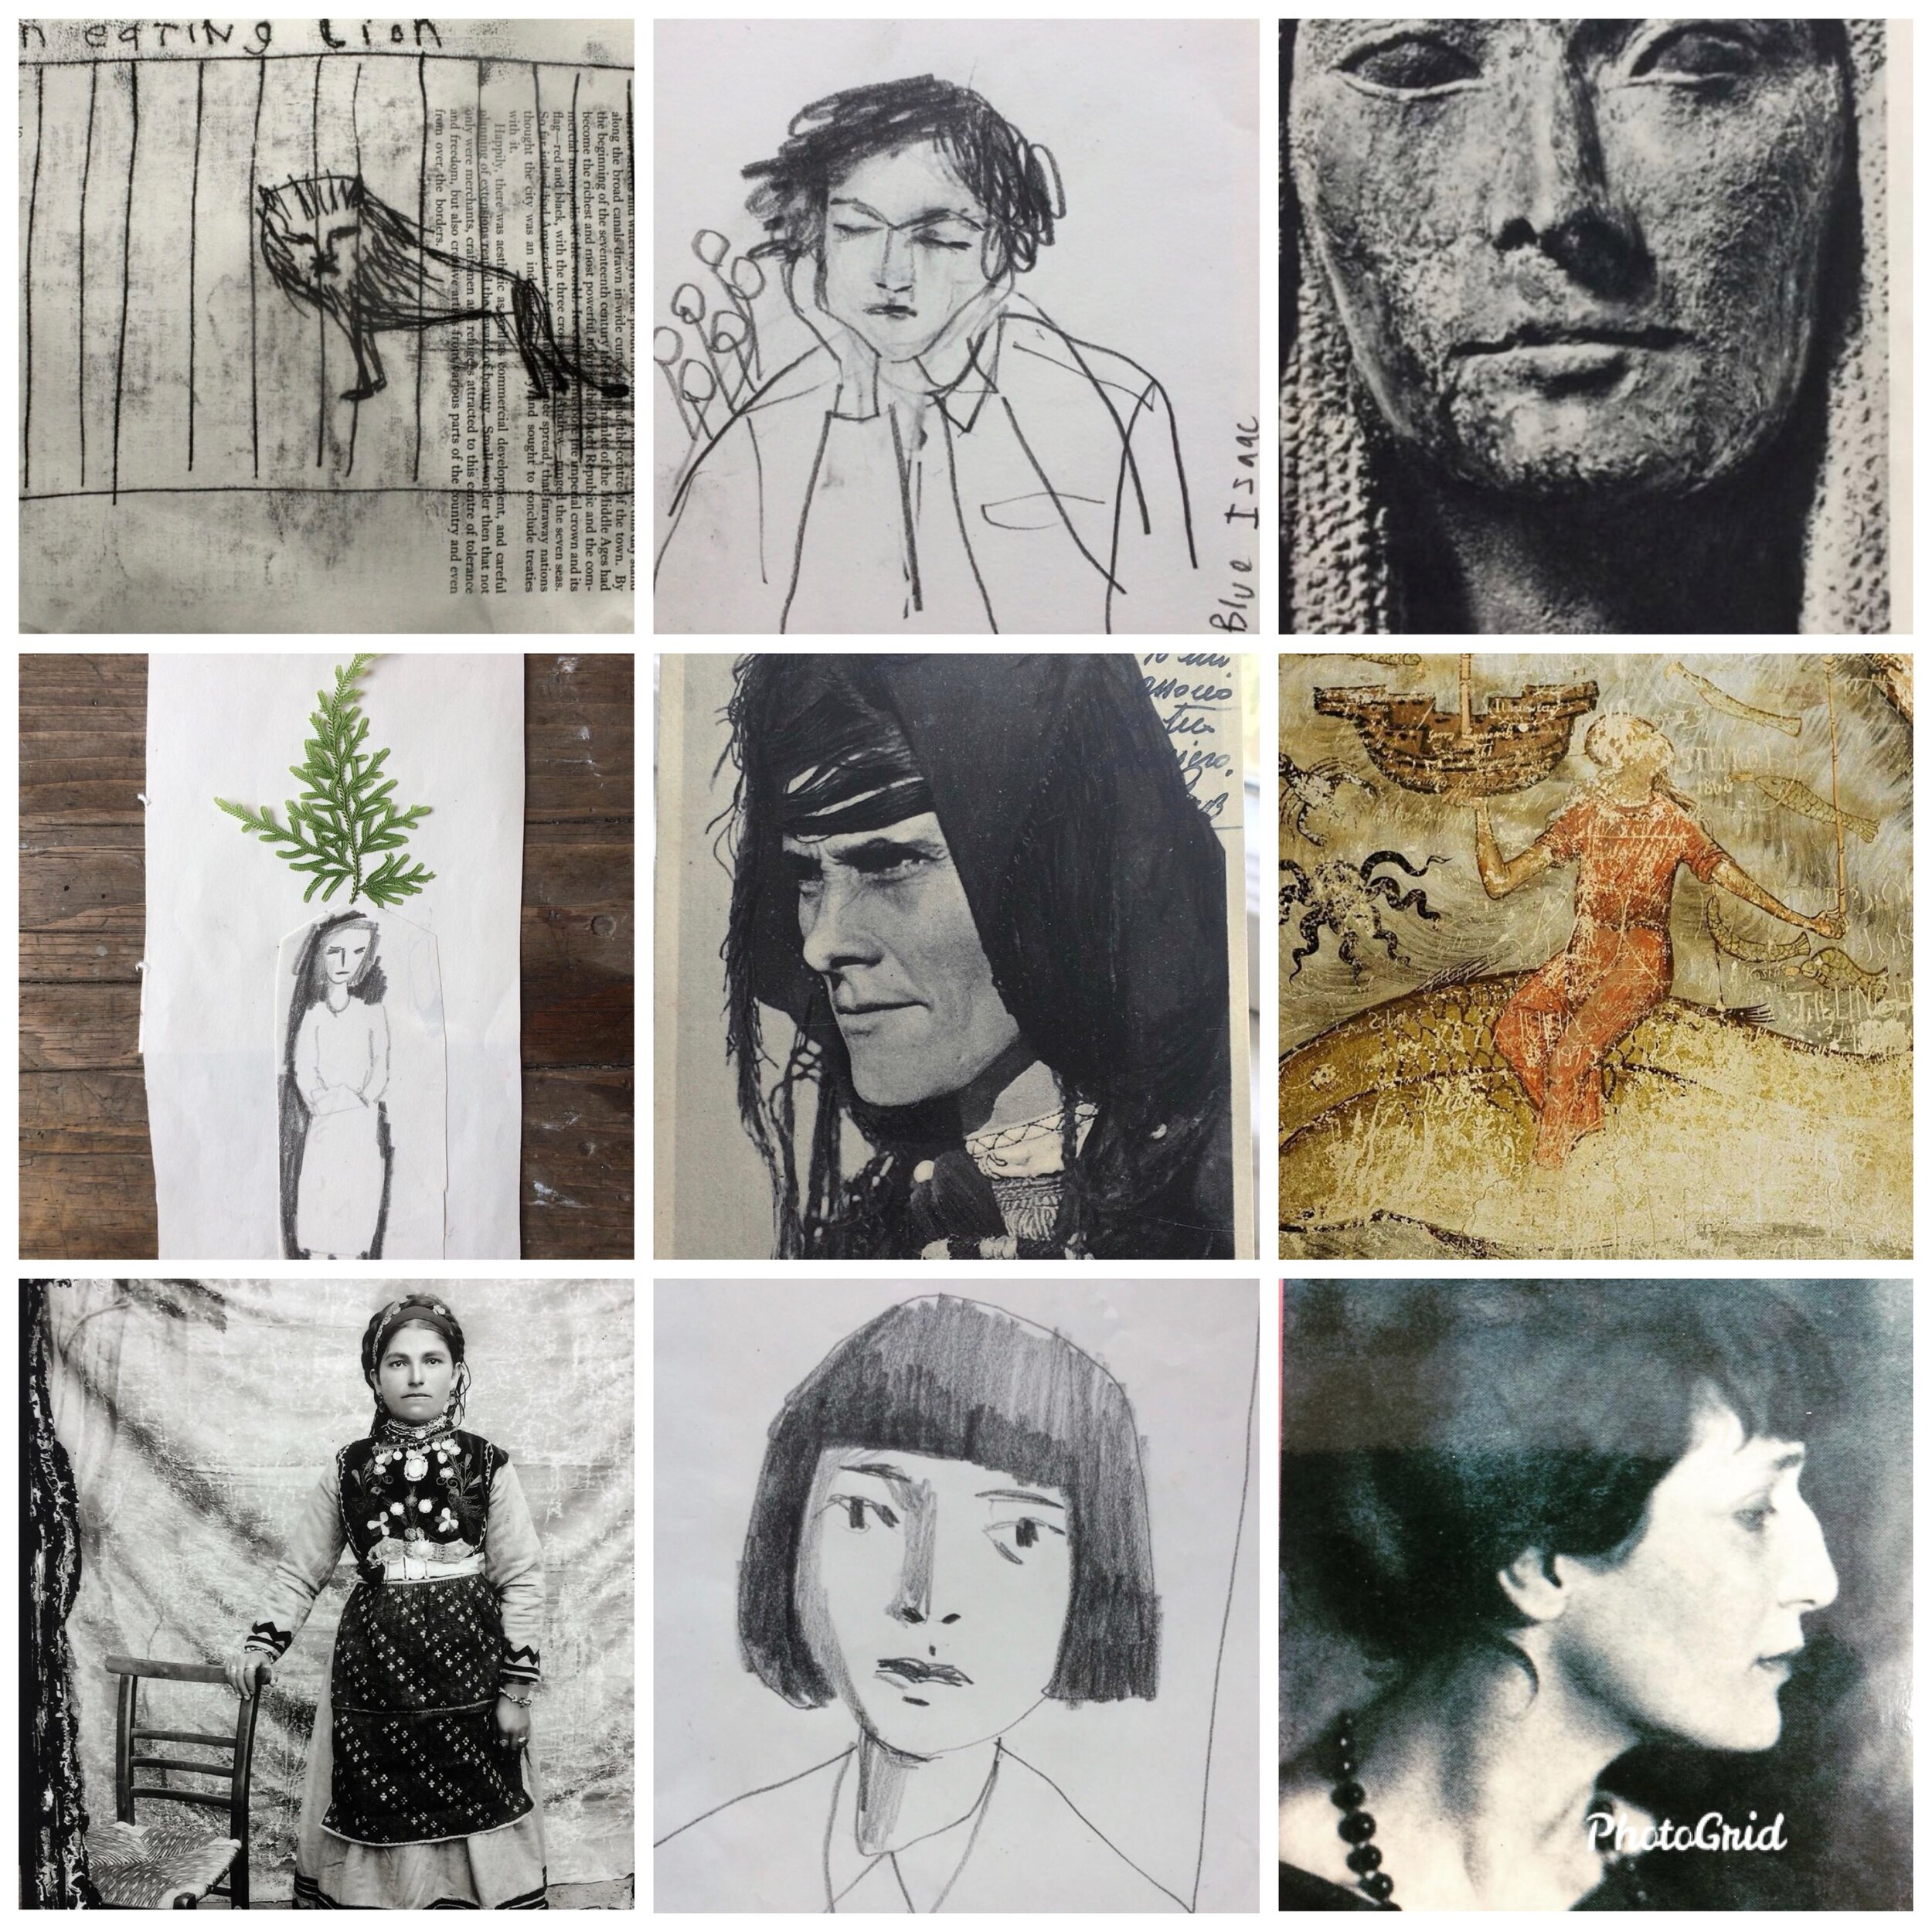 BRILLIANT SCOTS ARTIST MAUD HEWLINGS JUXTAPOSES HER OWN DRAWINGS WITH SOLEMN VINTAGE PHOTOGRAPHS.